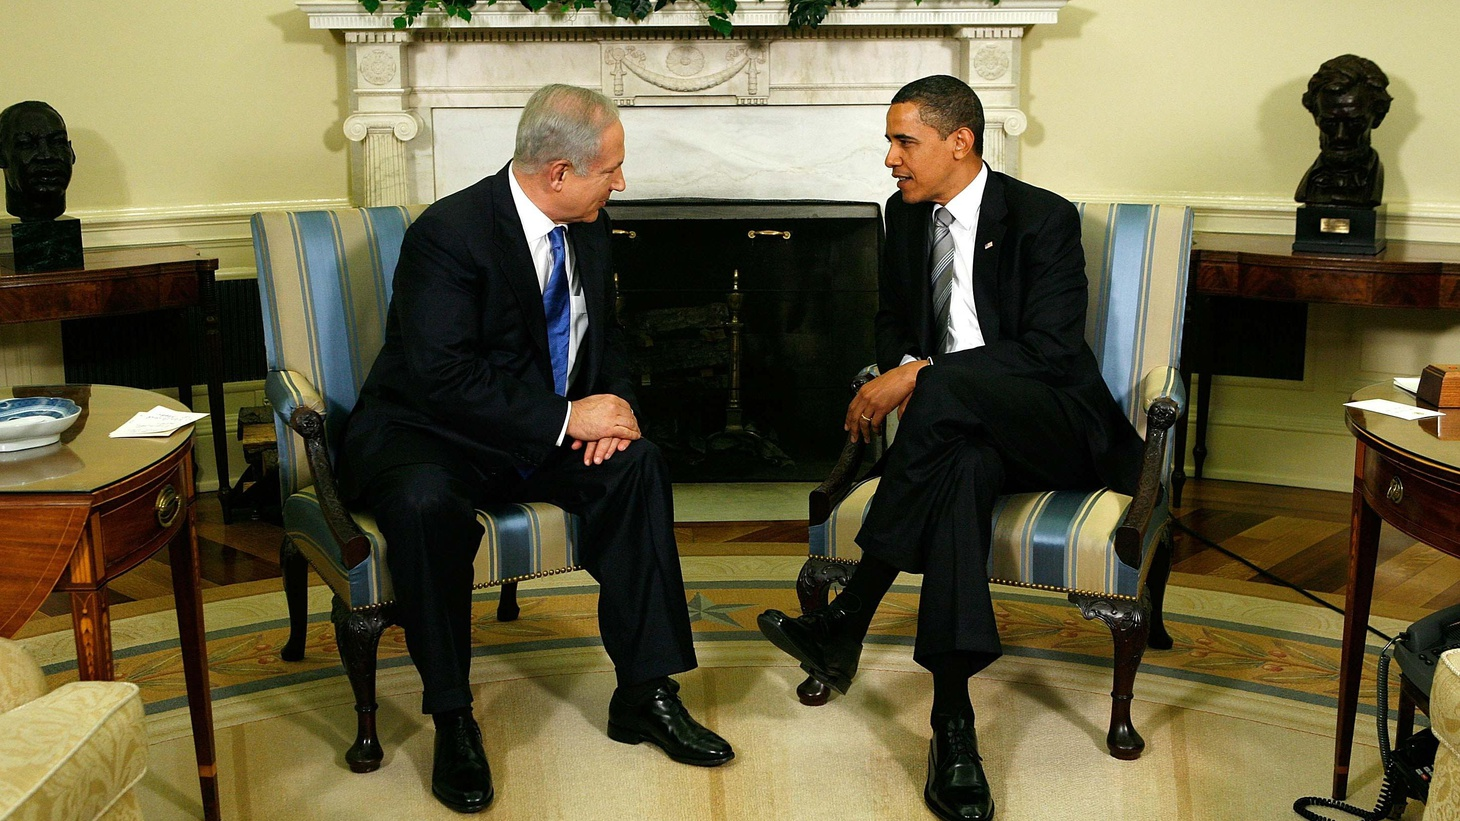 Israeli Prime Minister Netanyahu is at the White House today for the first in a string of meetings that will help define President Obama's policies in the Middle East. Also, Sri Lanka's rebel Tamil Tigers are routed and their leader killed, and the Bush Administration and the Rumsfeld legacy.